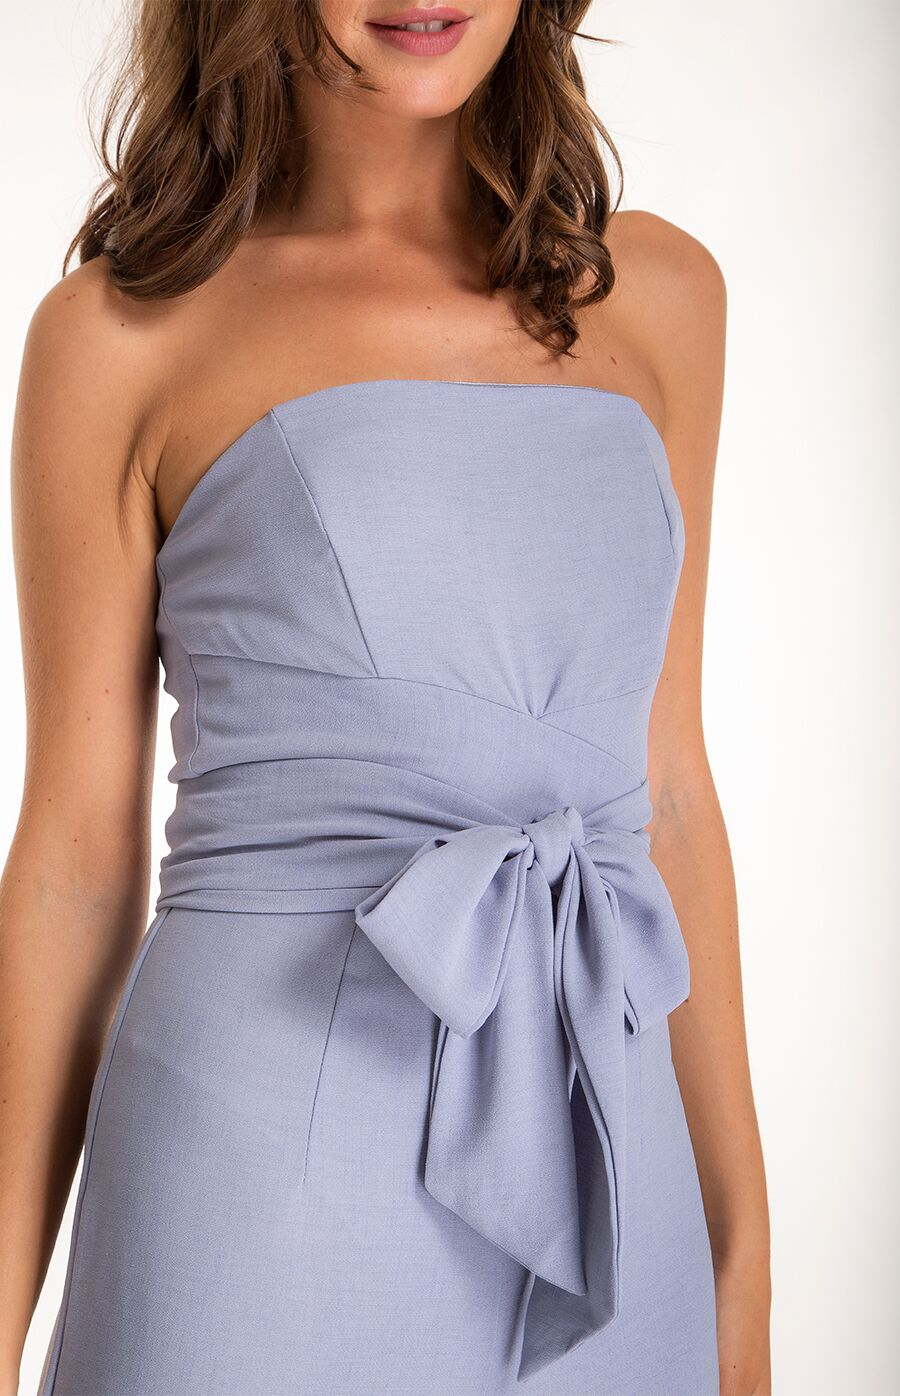 53090a585f6e Tiffany Strapless Wrap Style Belt Jumpsuit in Grey/Blue - The Dress ...